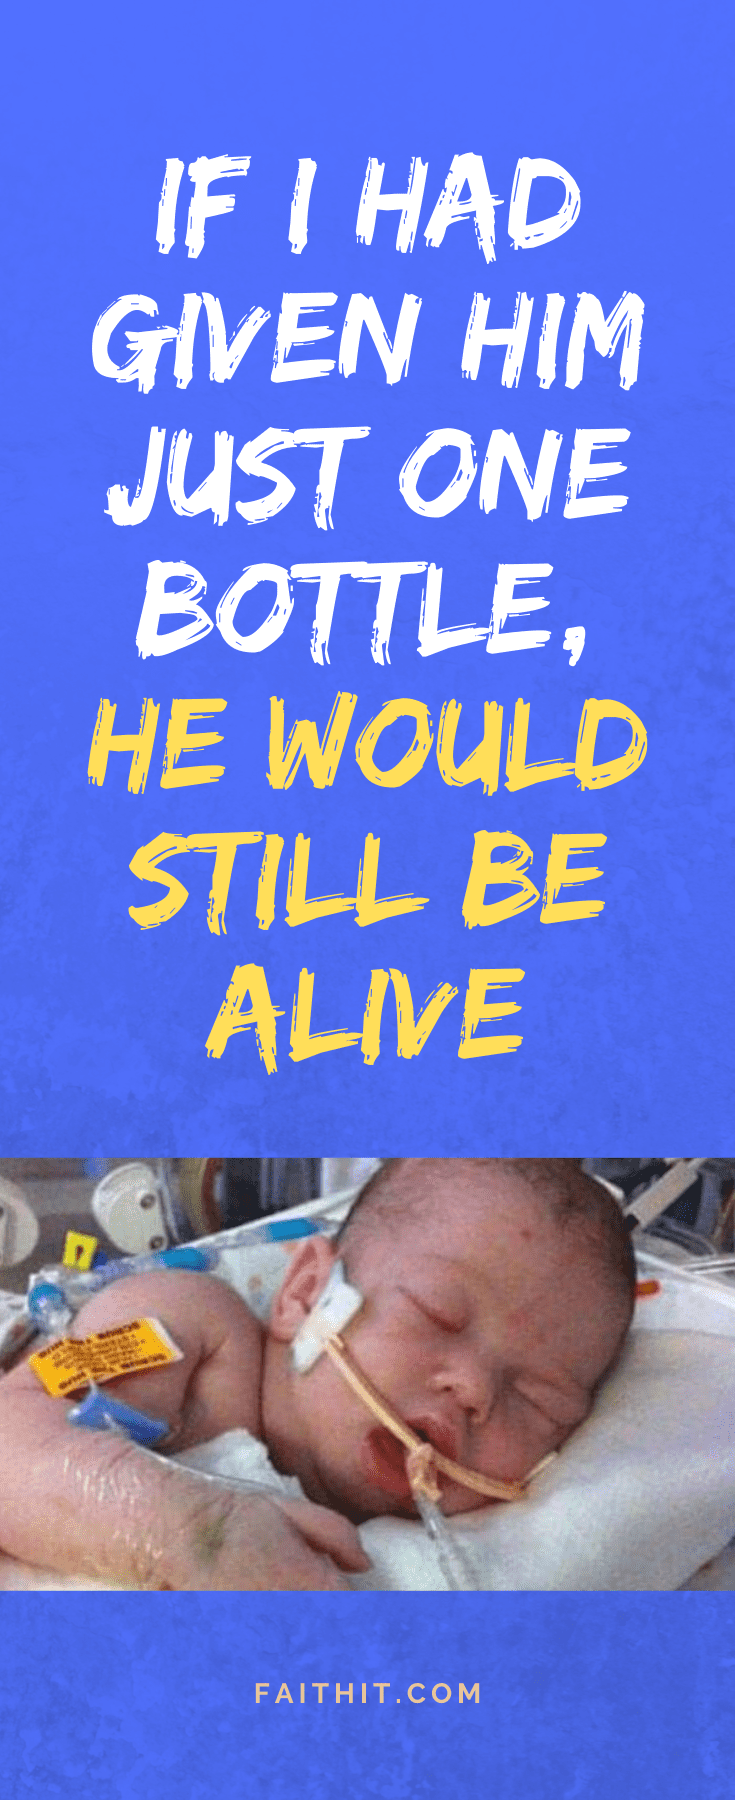 If I Had Given Him Just One Bottle, He Would Still Be Alive